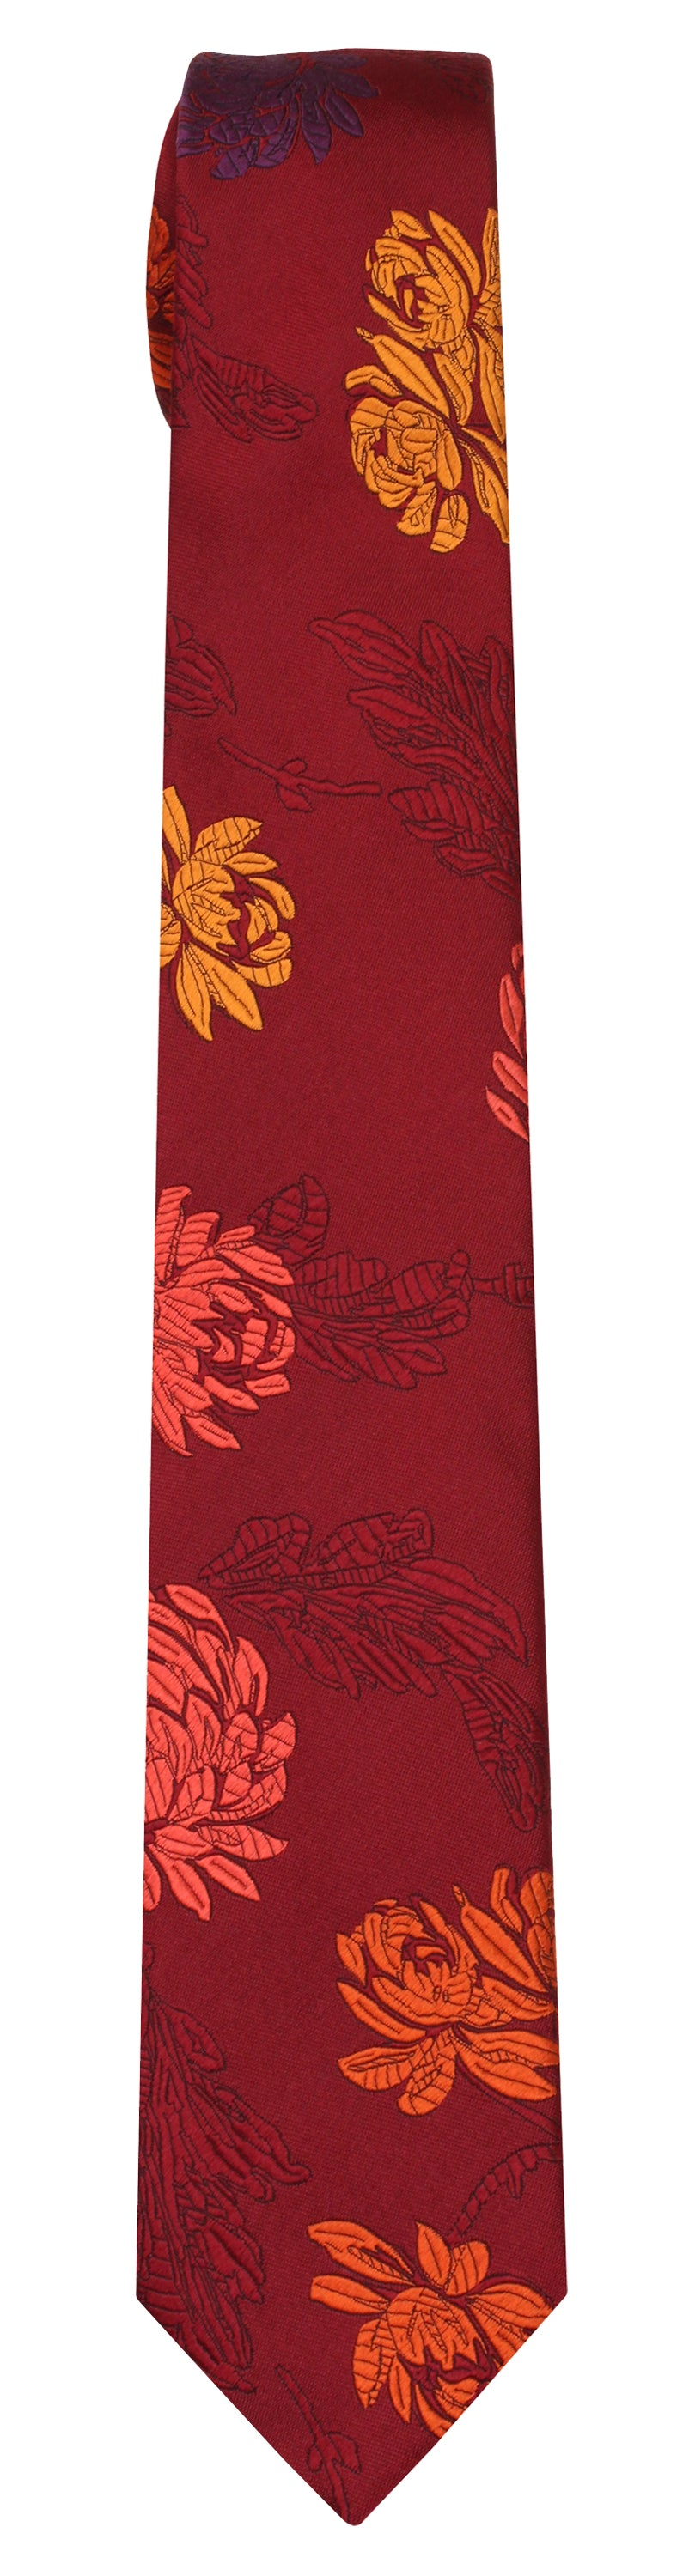 Mimi Fong English Garden Tie in Wine